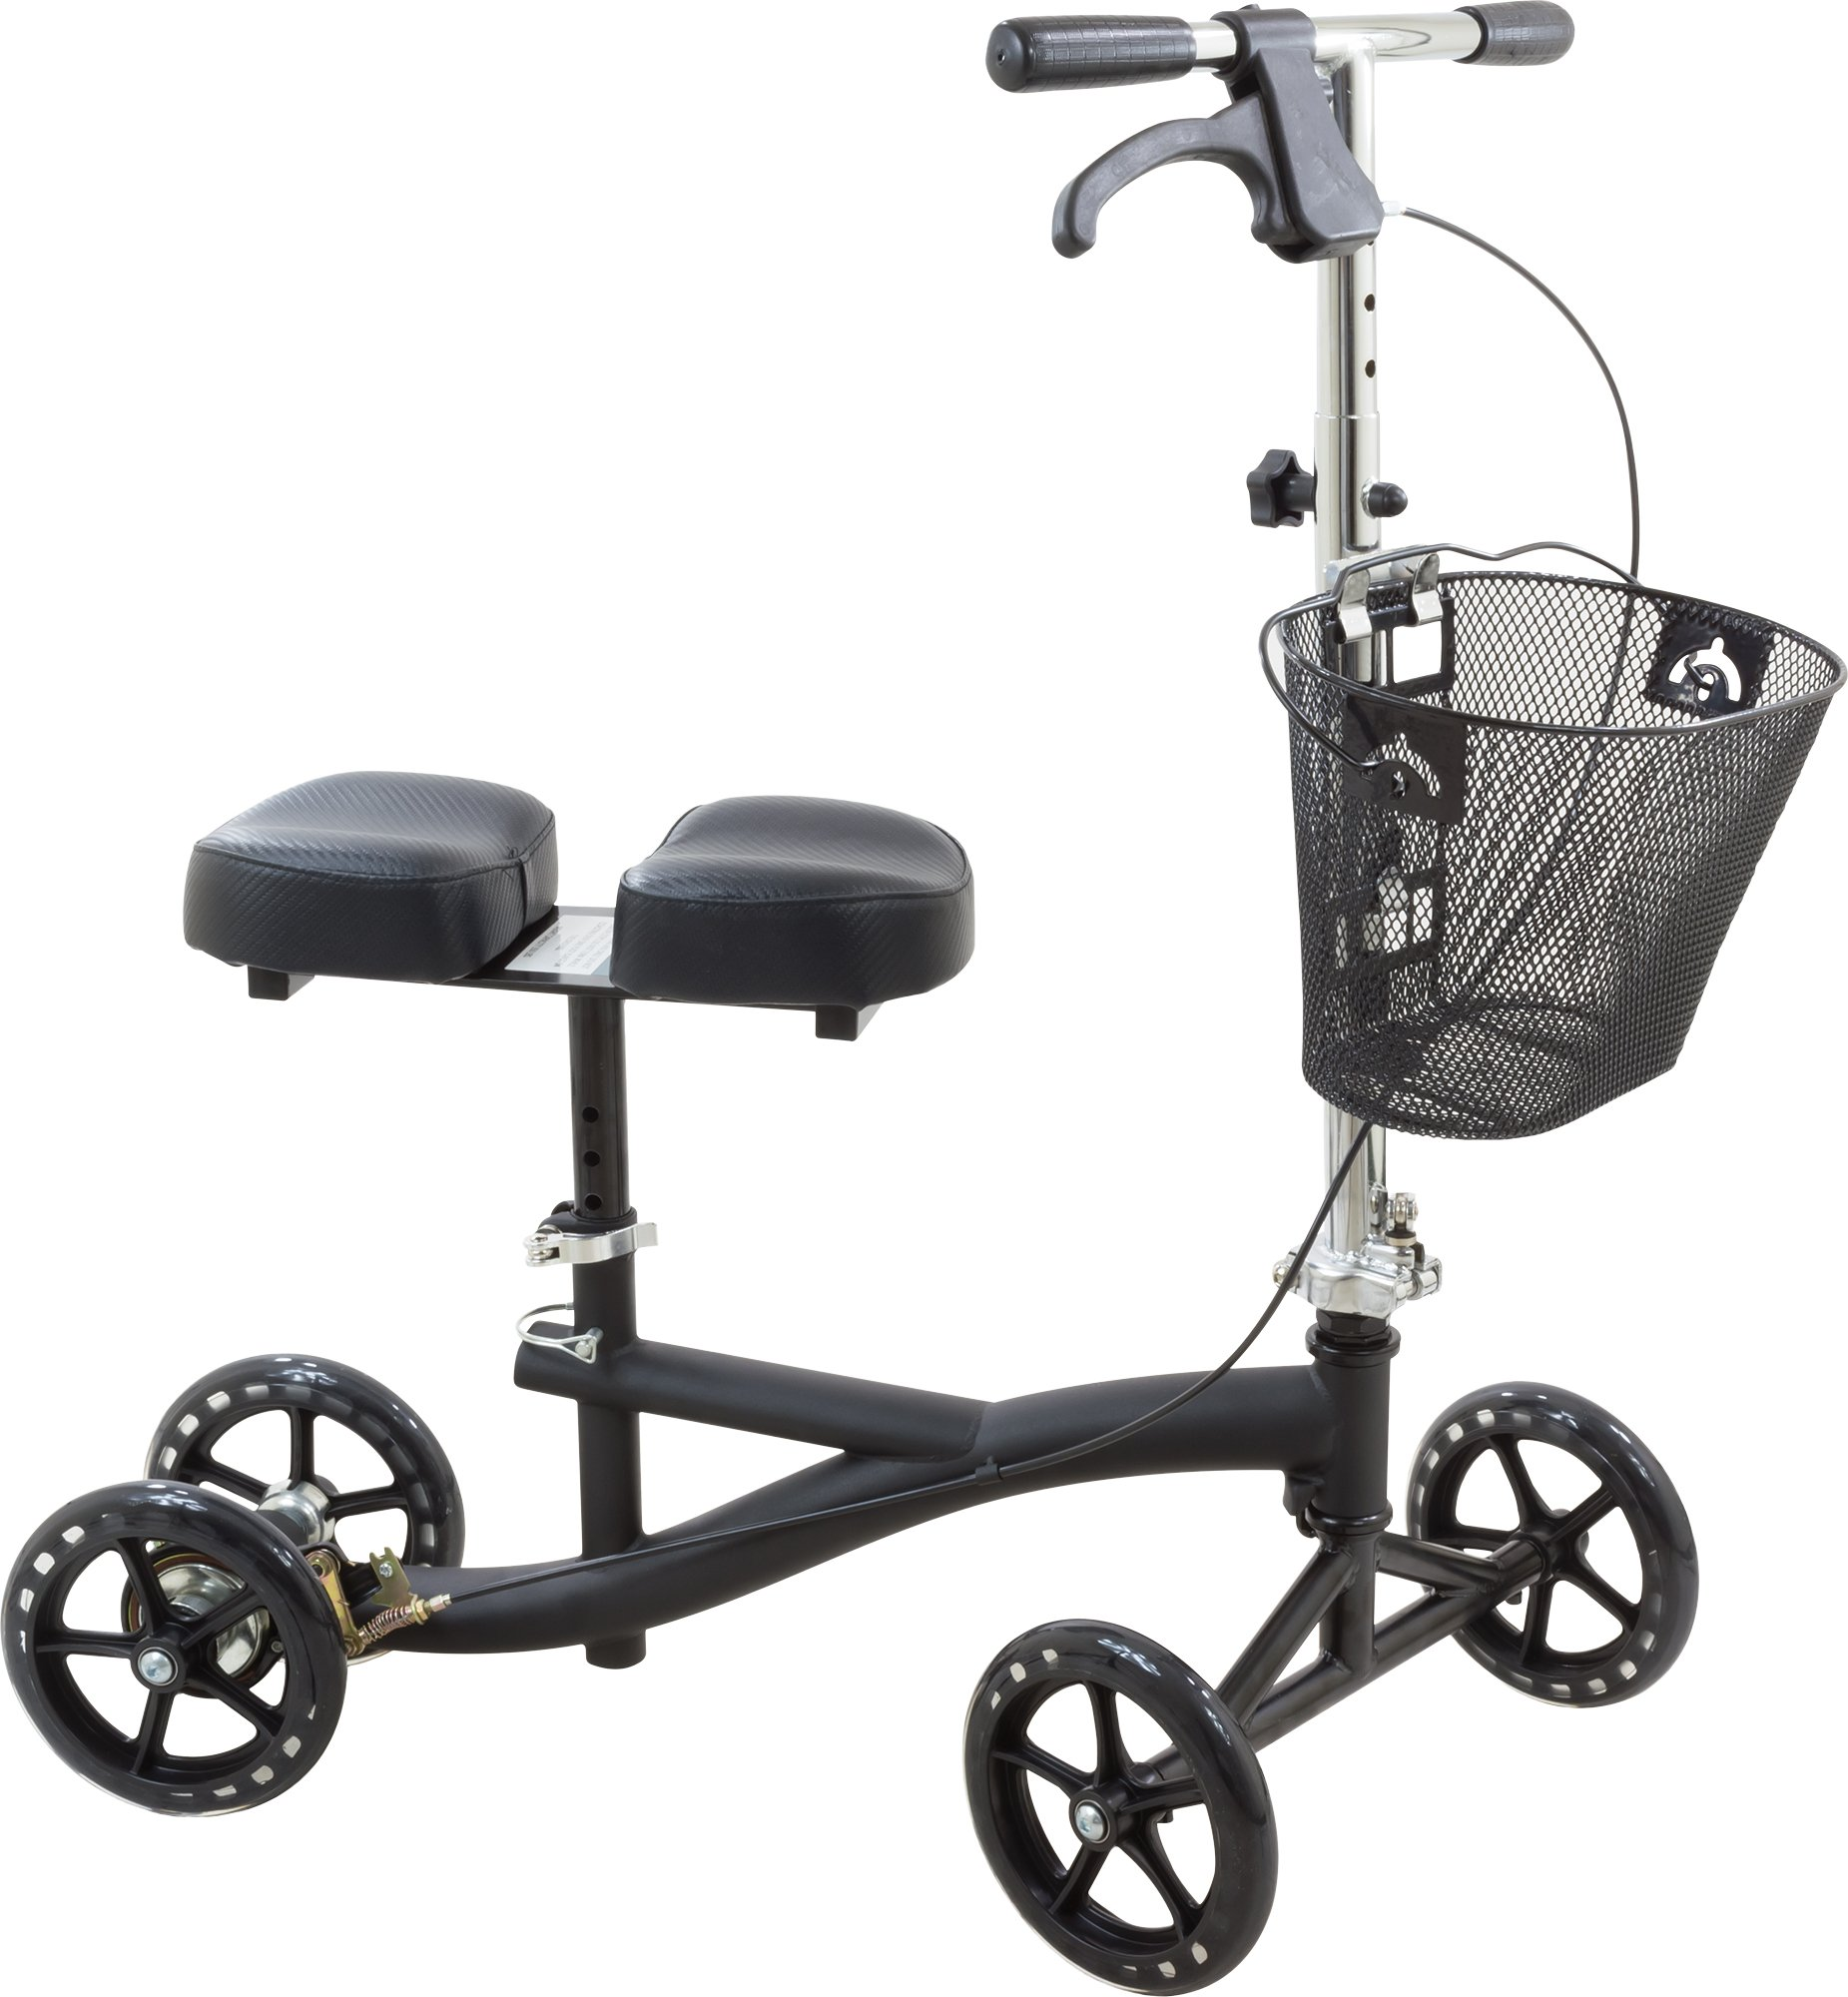 Roscoe Knee Scooter with Basket - Knee Walker for Ankle or Foot Injuries - Height Adjustable Knee Crutch Medical Scooter, Black by Roscoe Medical